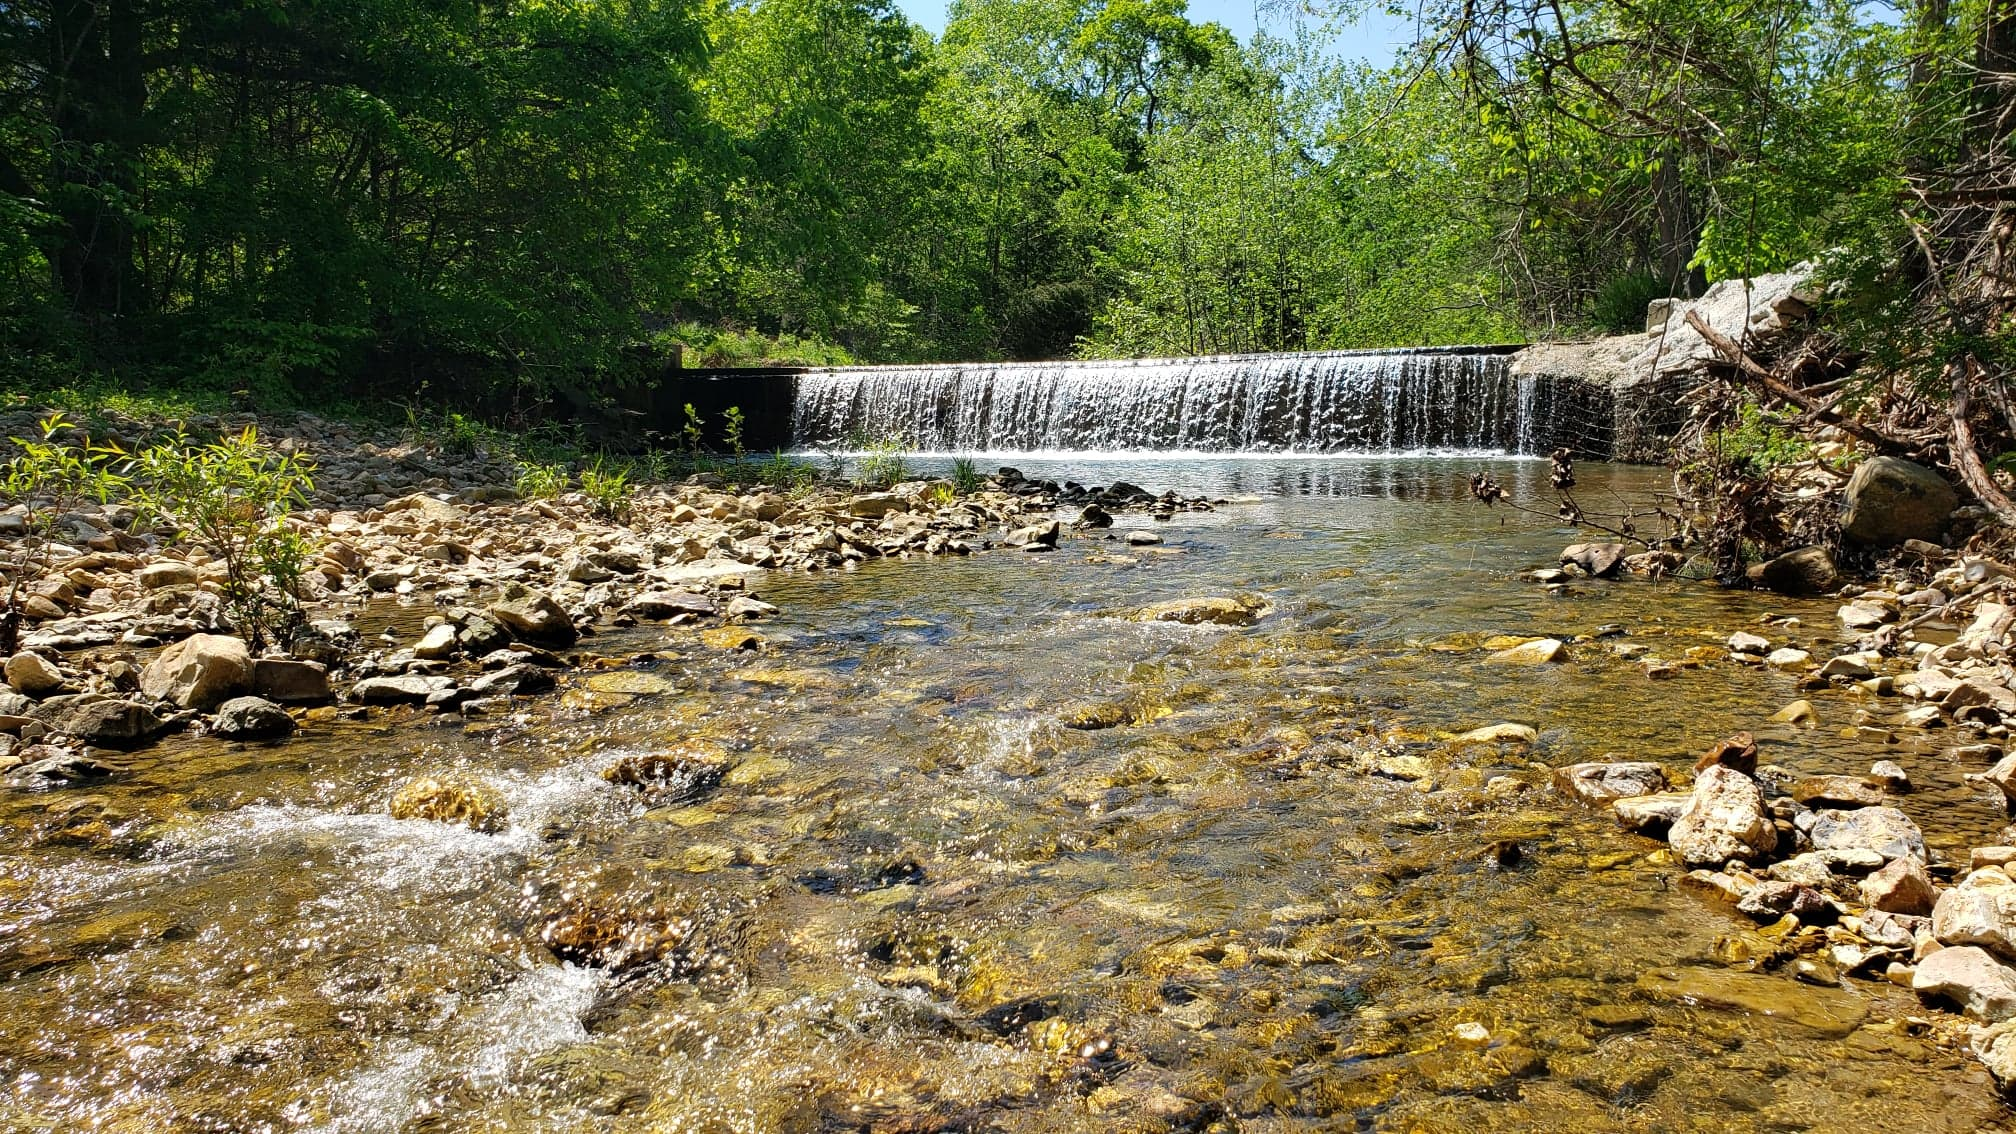 Hunting Camp For Sale in Missouri Ozarks with River Frontage